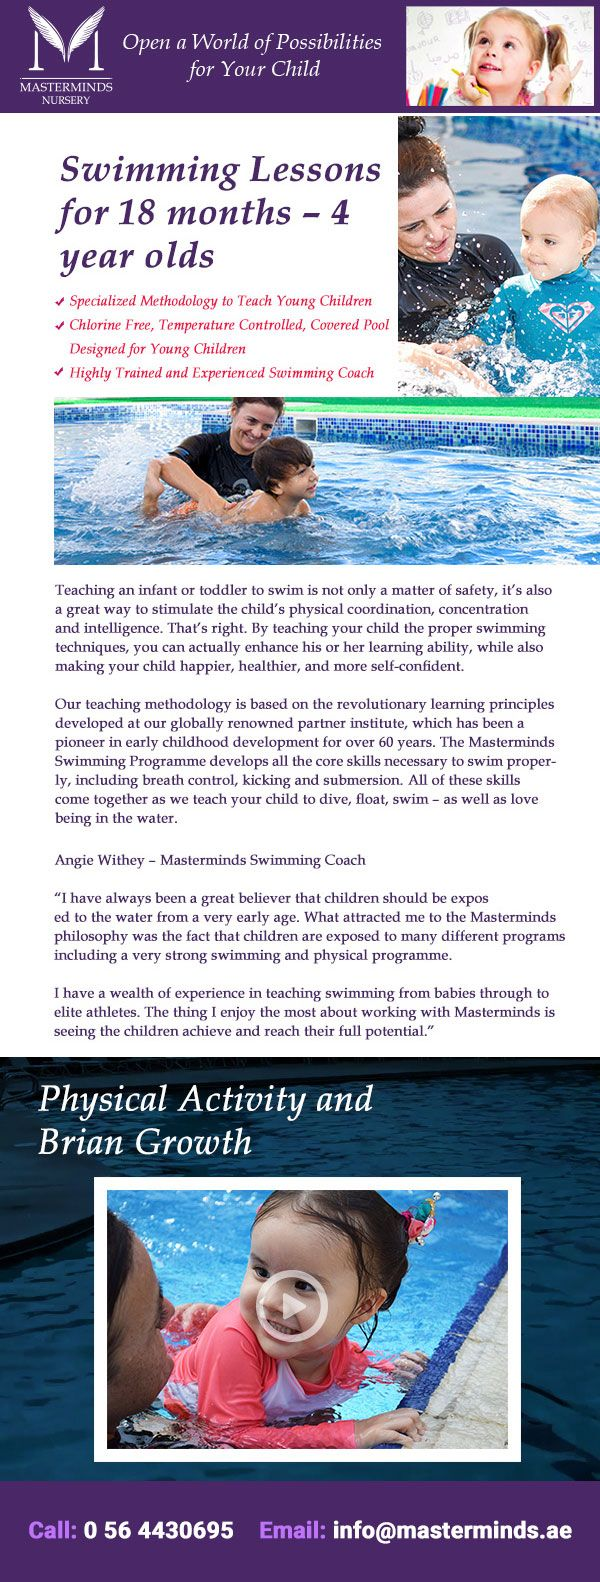 Proper swimming techniques enhances your kids learning abilities while also making them happier, healthier and self confident. Starting early at Masterminds Nursery benefits highly. Call us today on 0564430695 to get more details about our special programs for your little ones.